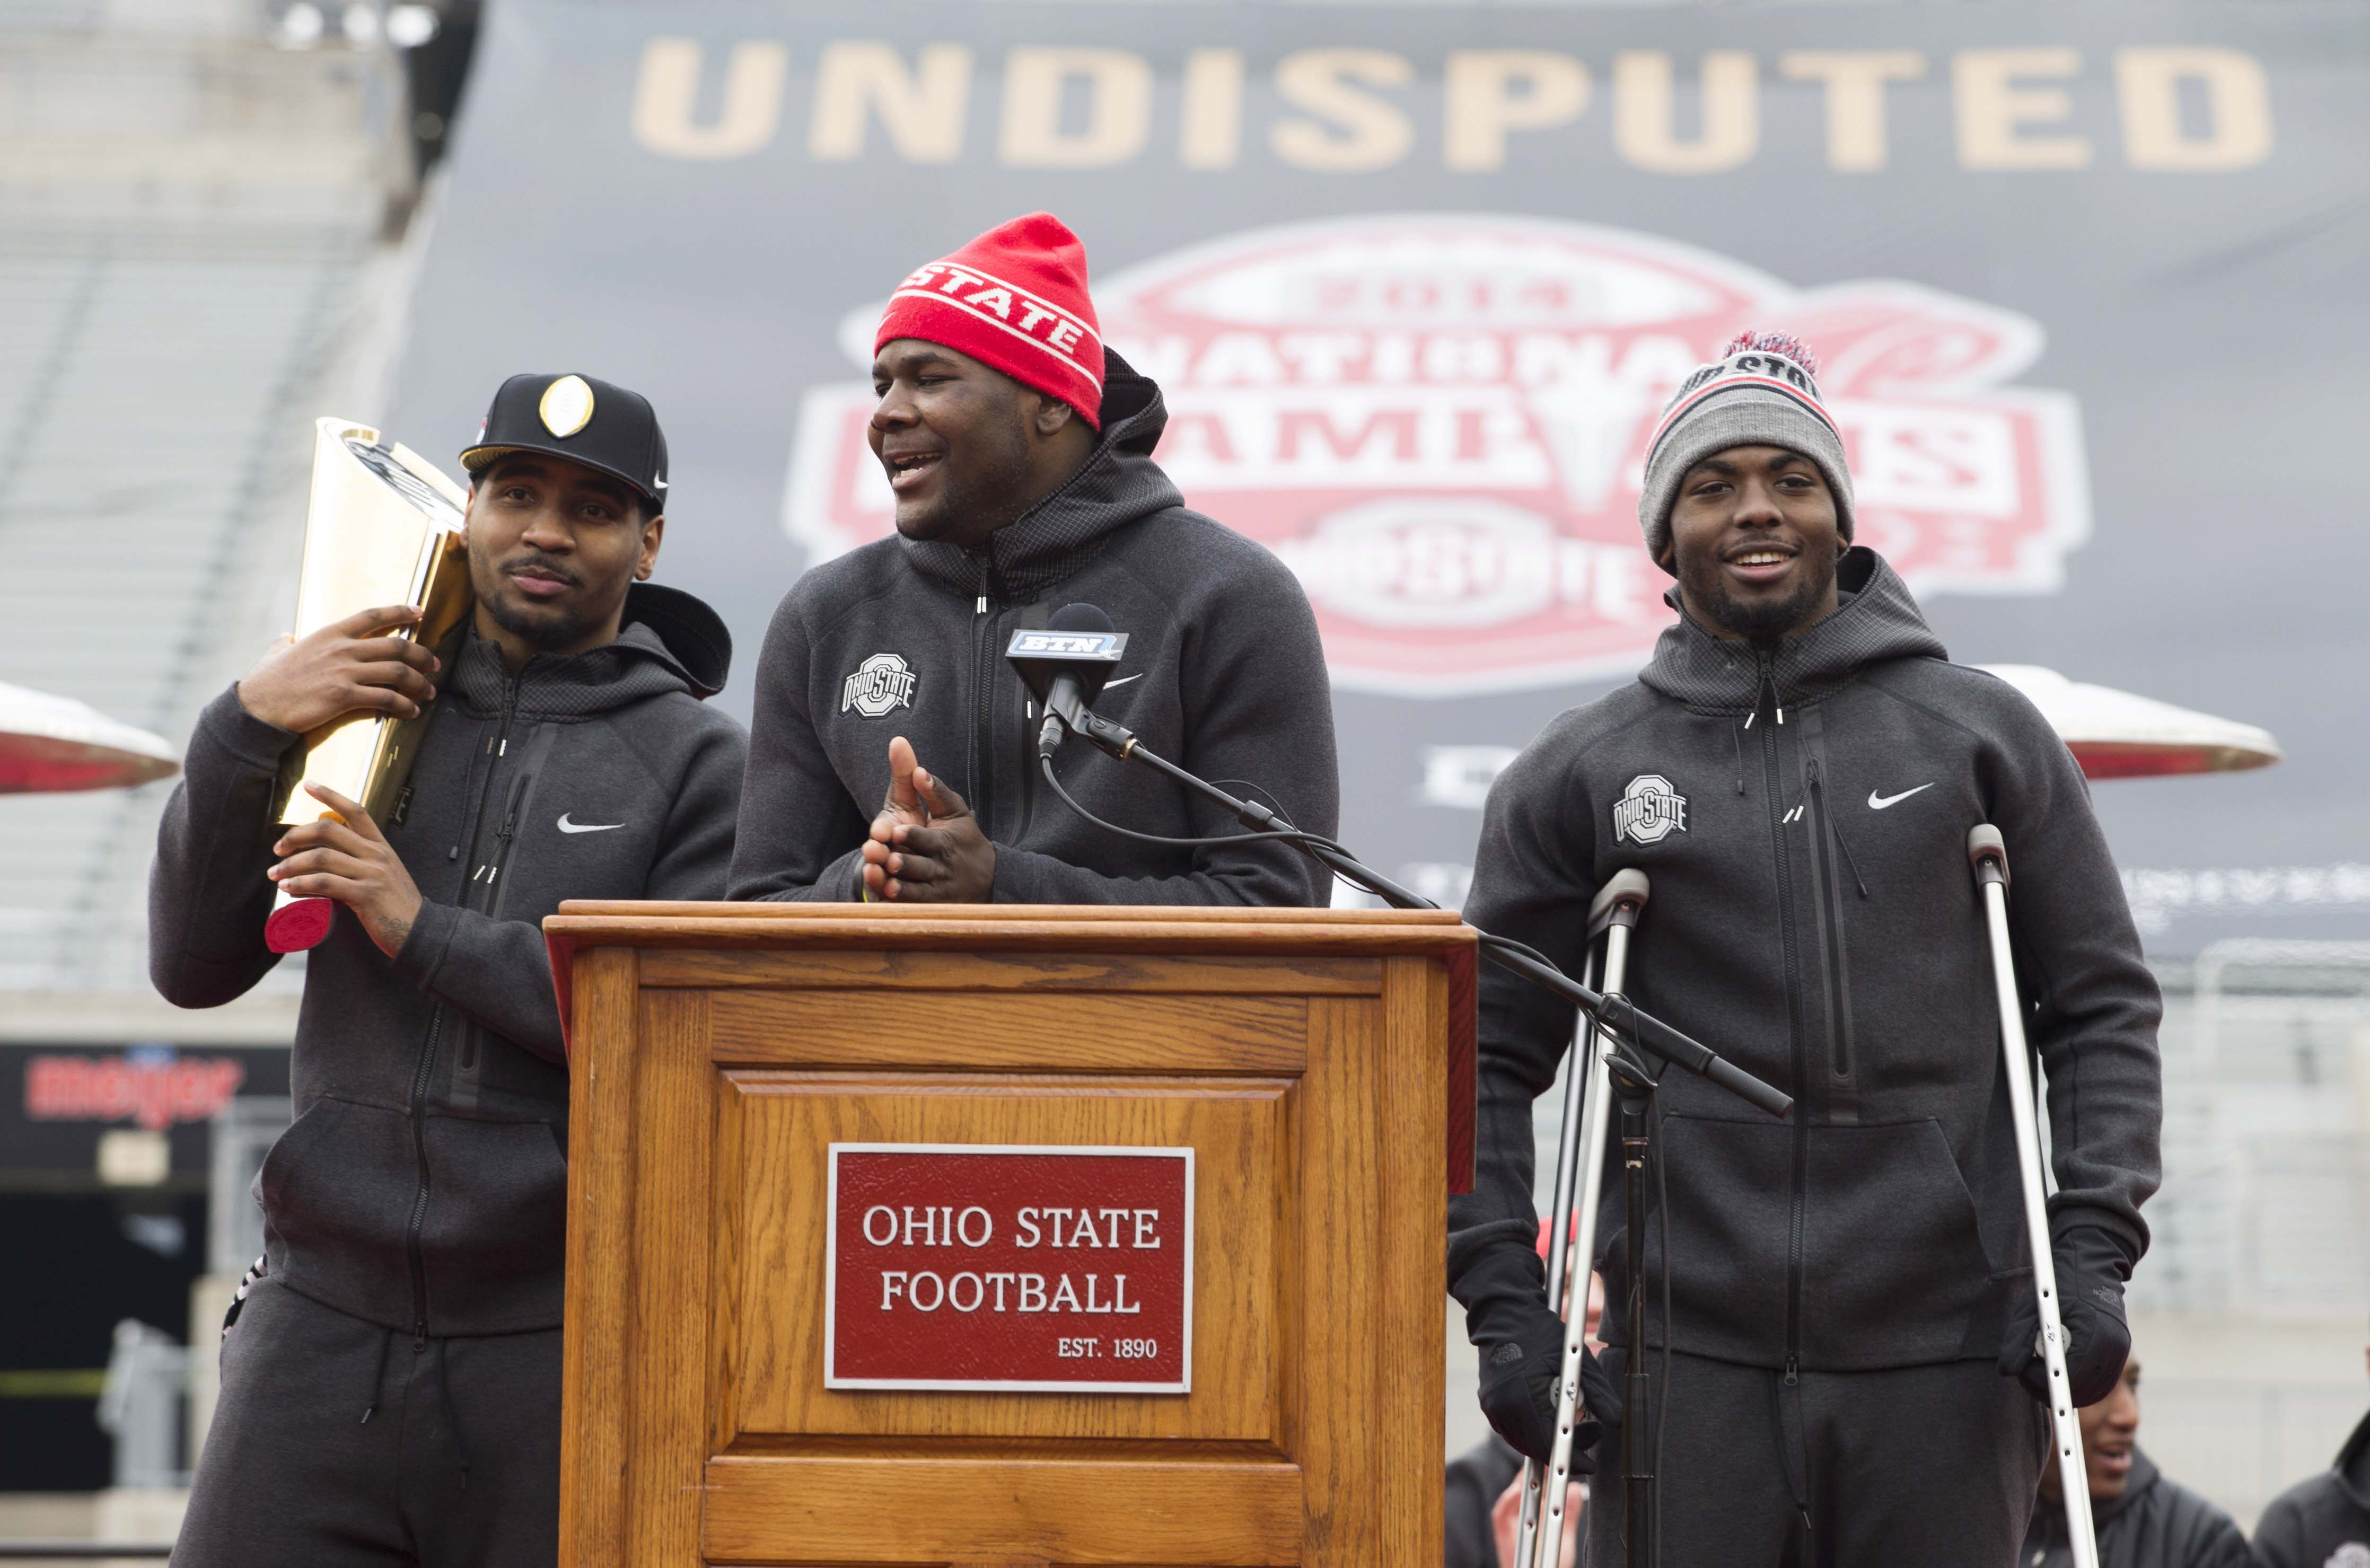 One of these guys will start for Ohio State.......maybe